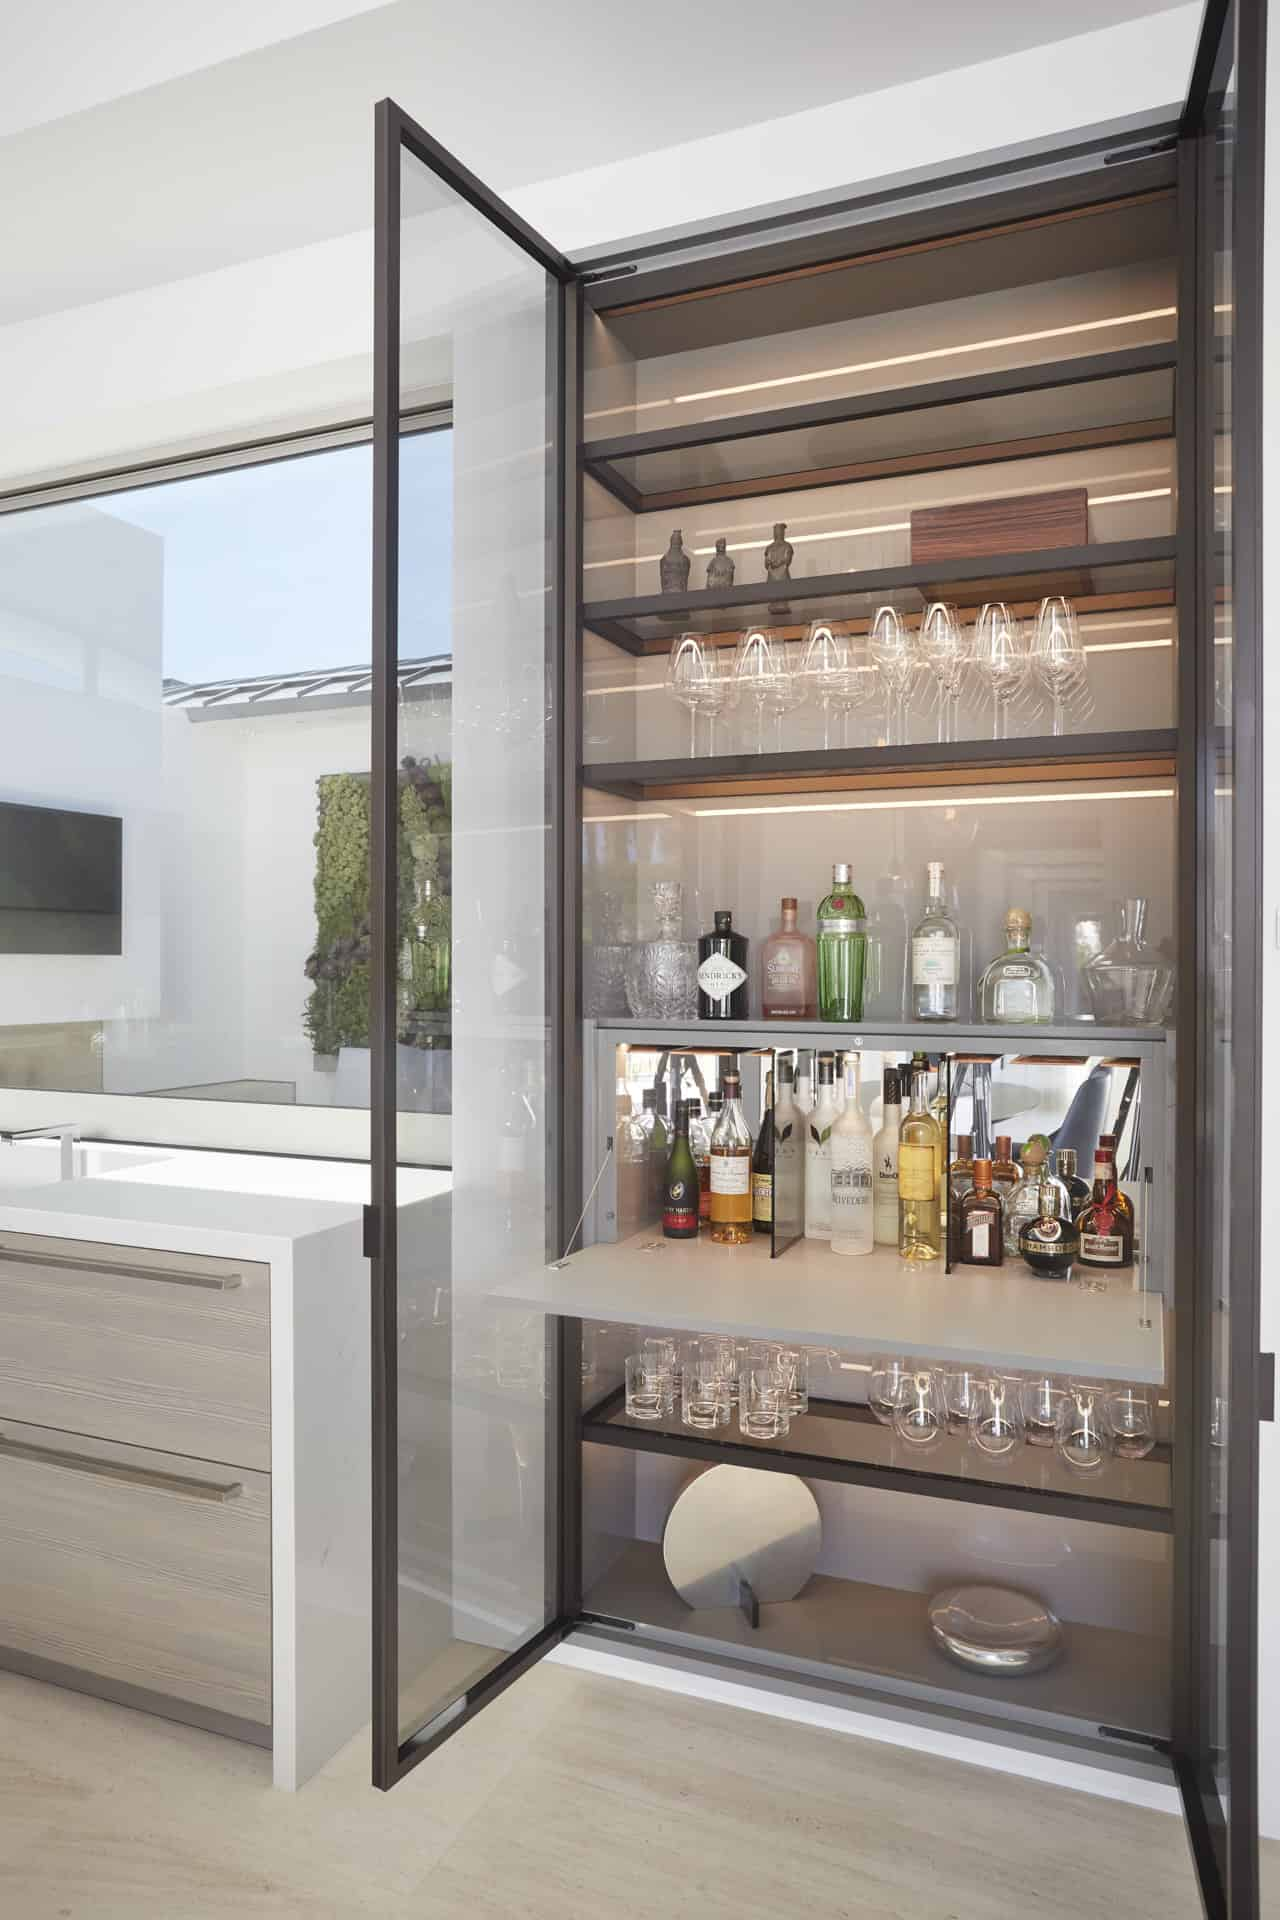 Floating glass-front bar cabinet is convenient as a pass-thru window to the courtyard